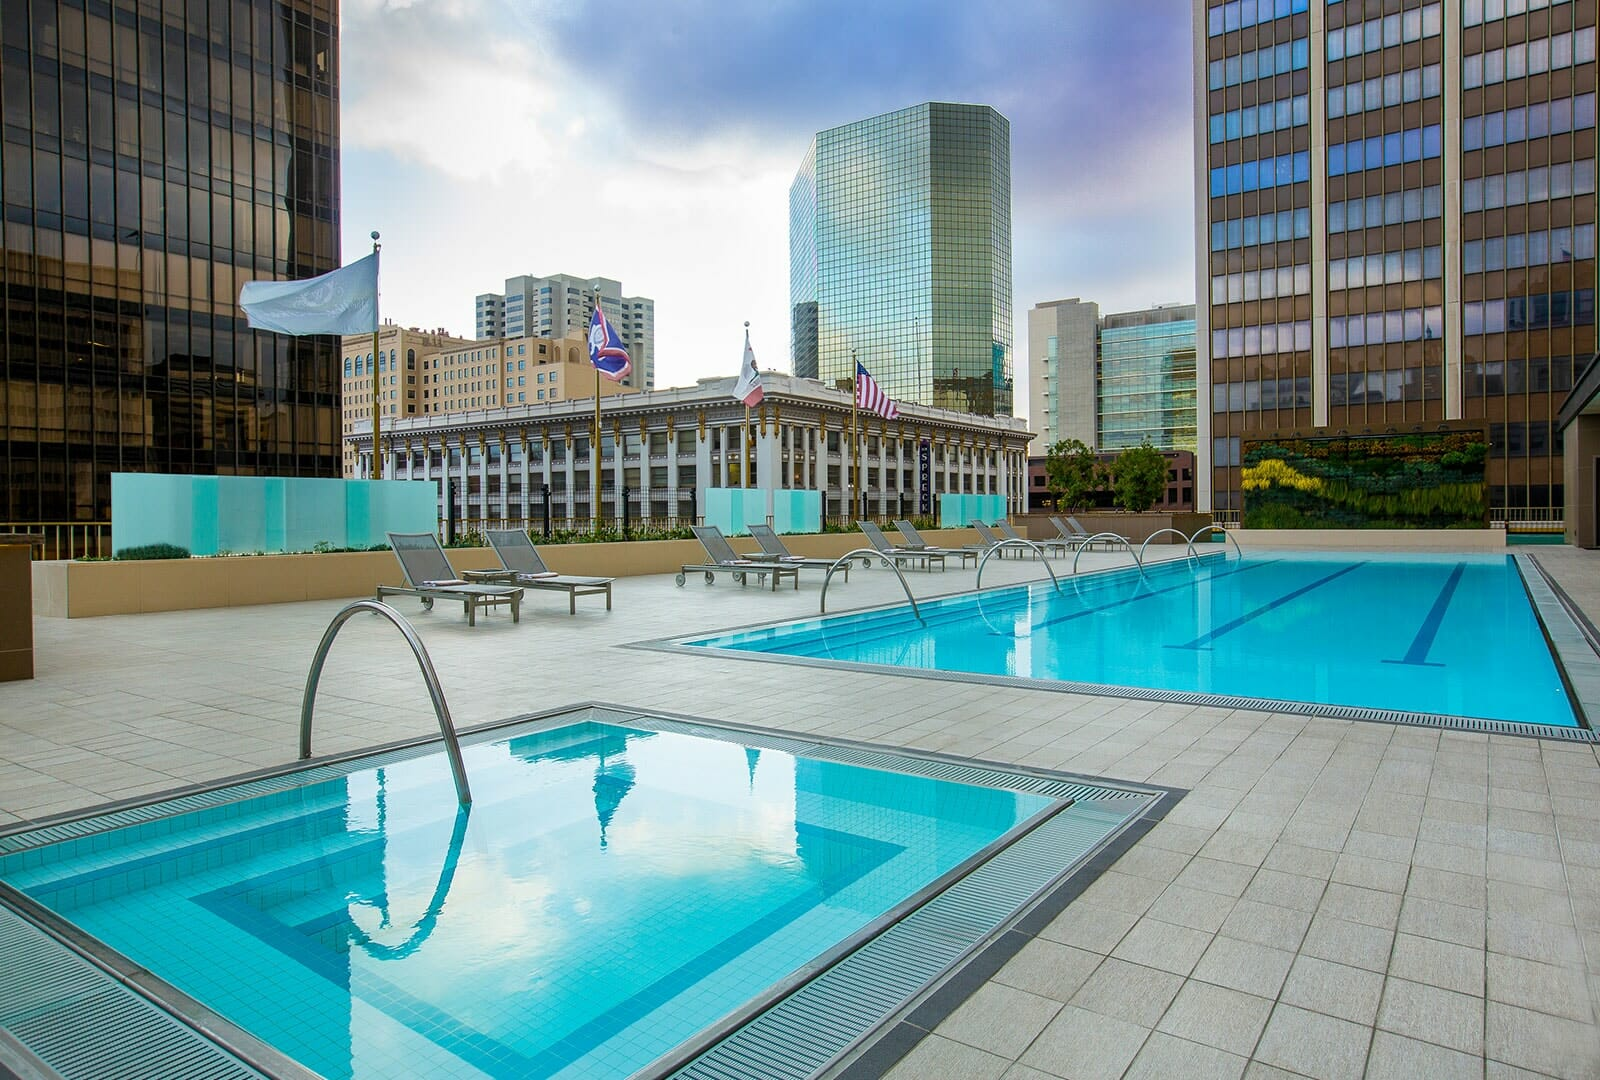 Westgate Hotel rooftop pool and hot tub with lounge chairs